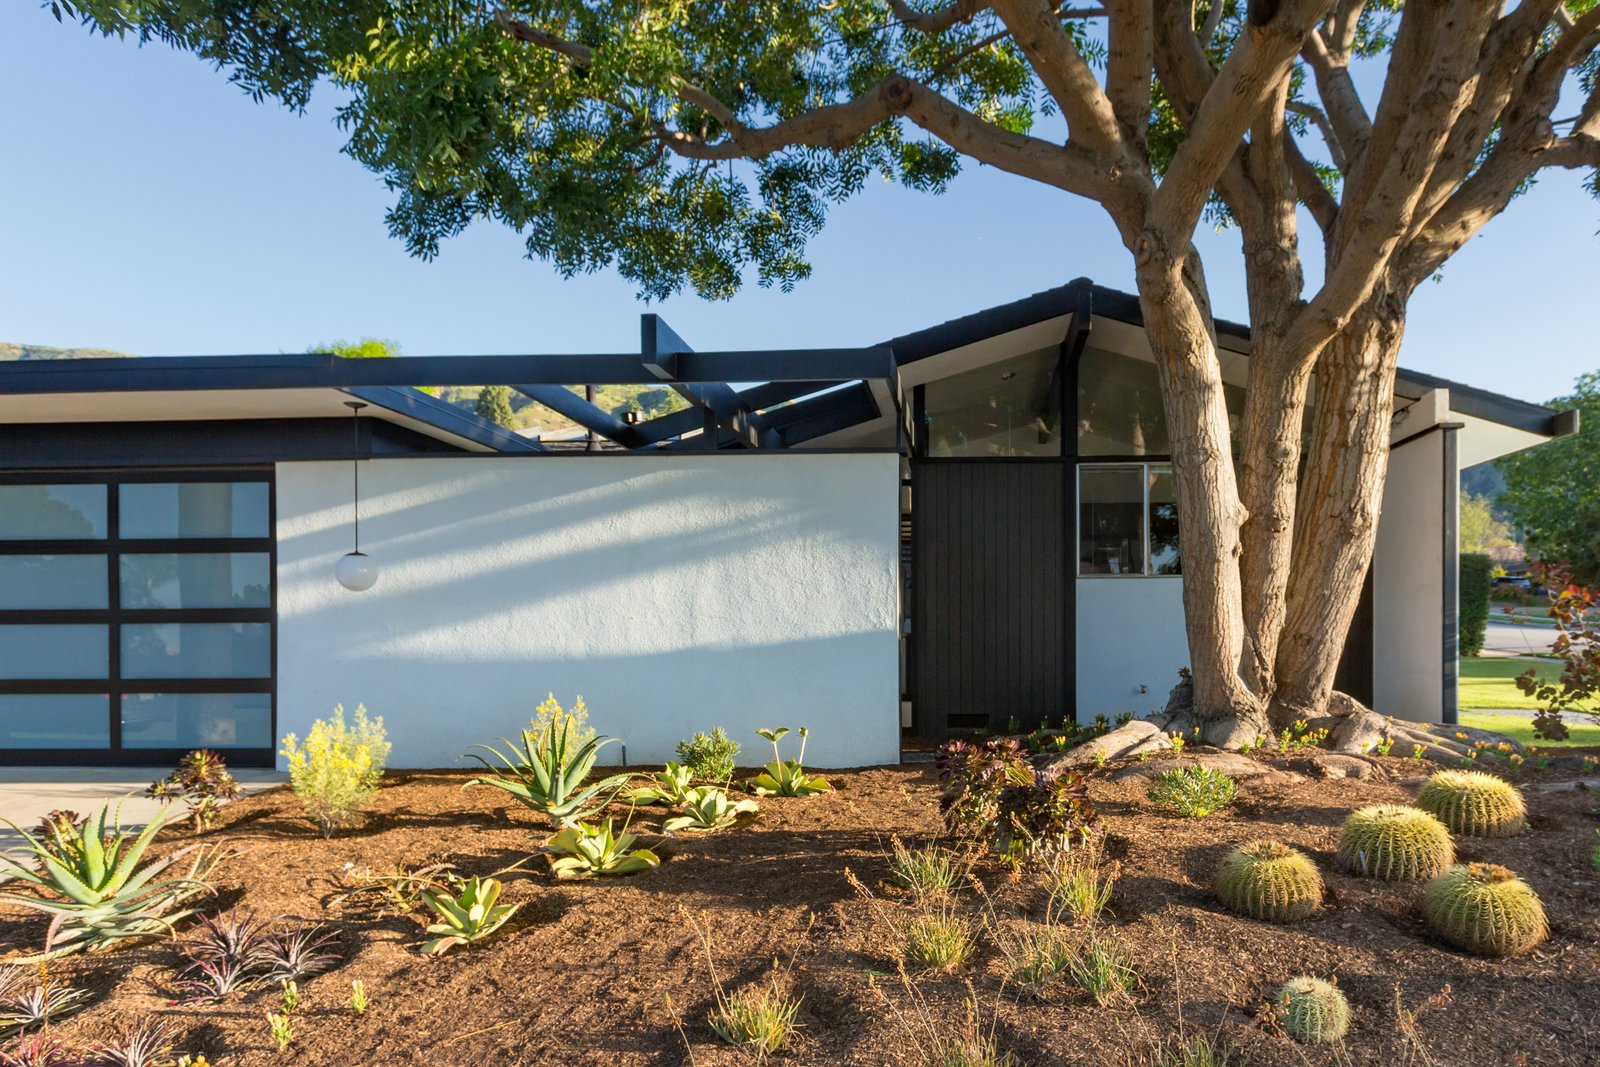 Outdoor, Front Yard, and Trees  Photo 2 of 14 in Offered at $899K, a Restored Midcentury Abode Shines in Southern California